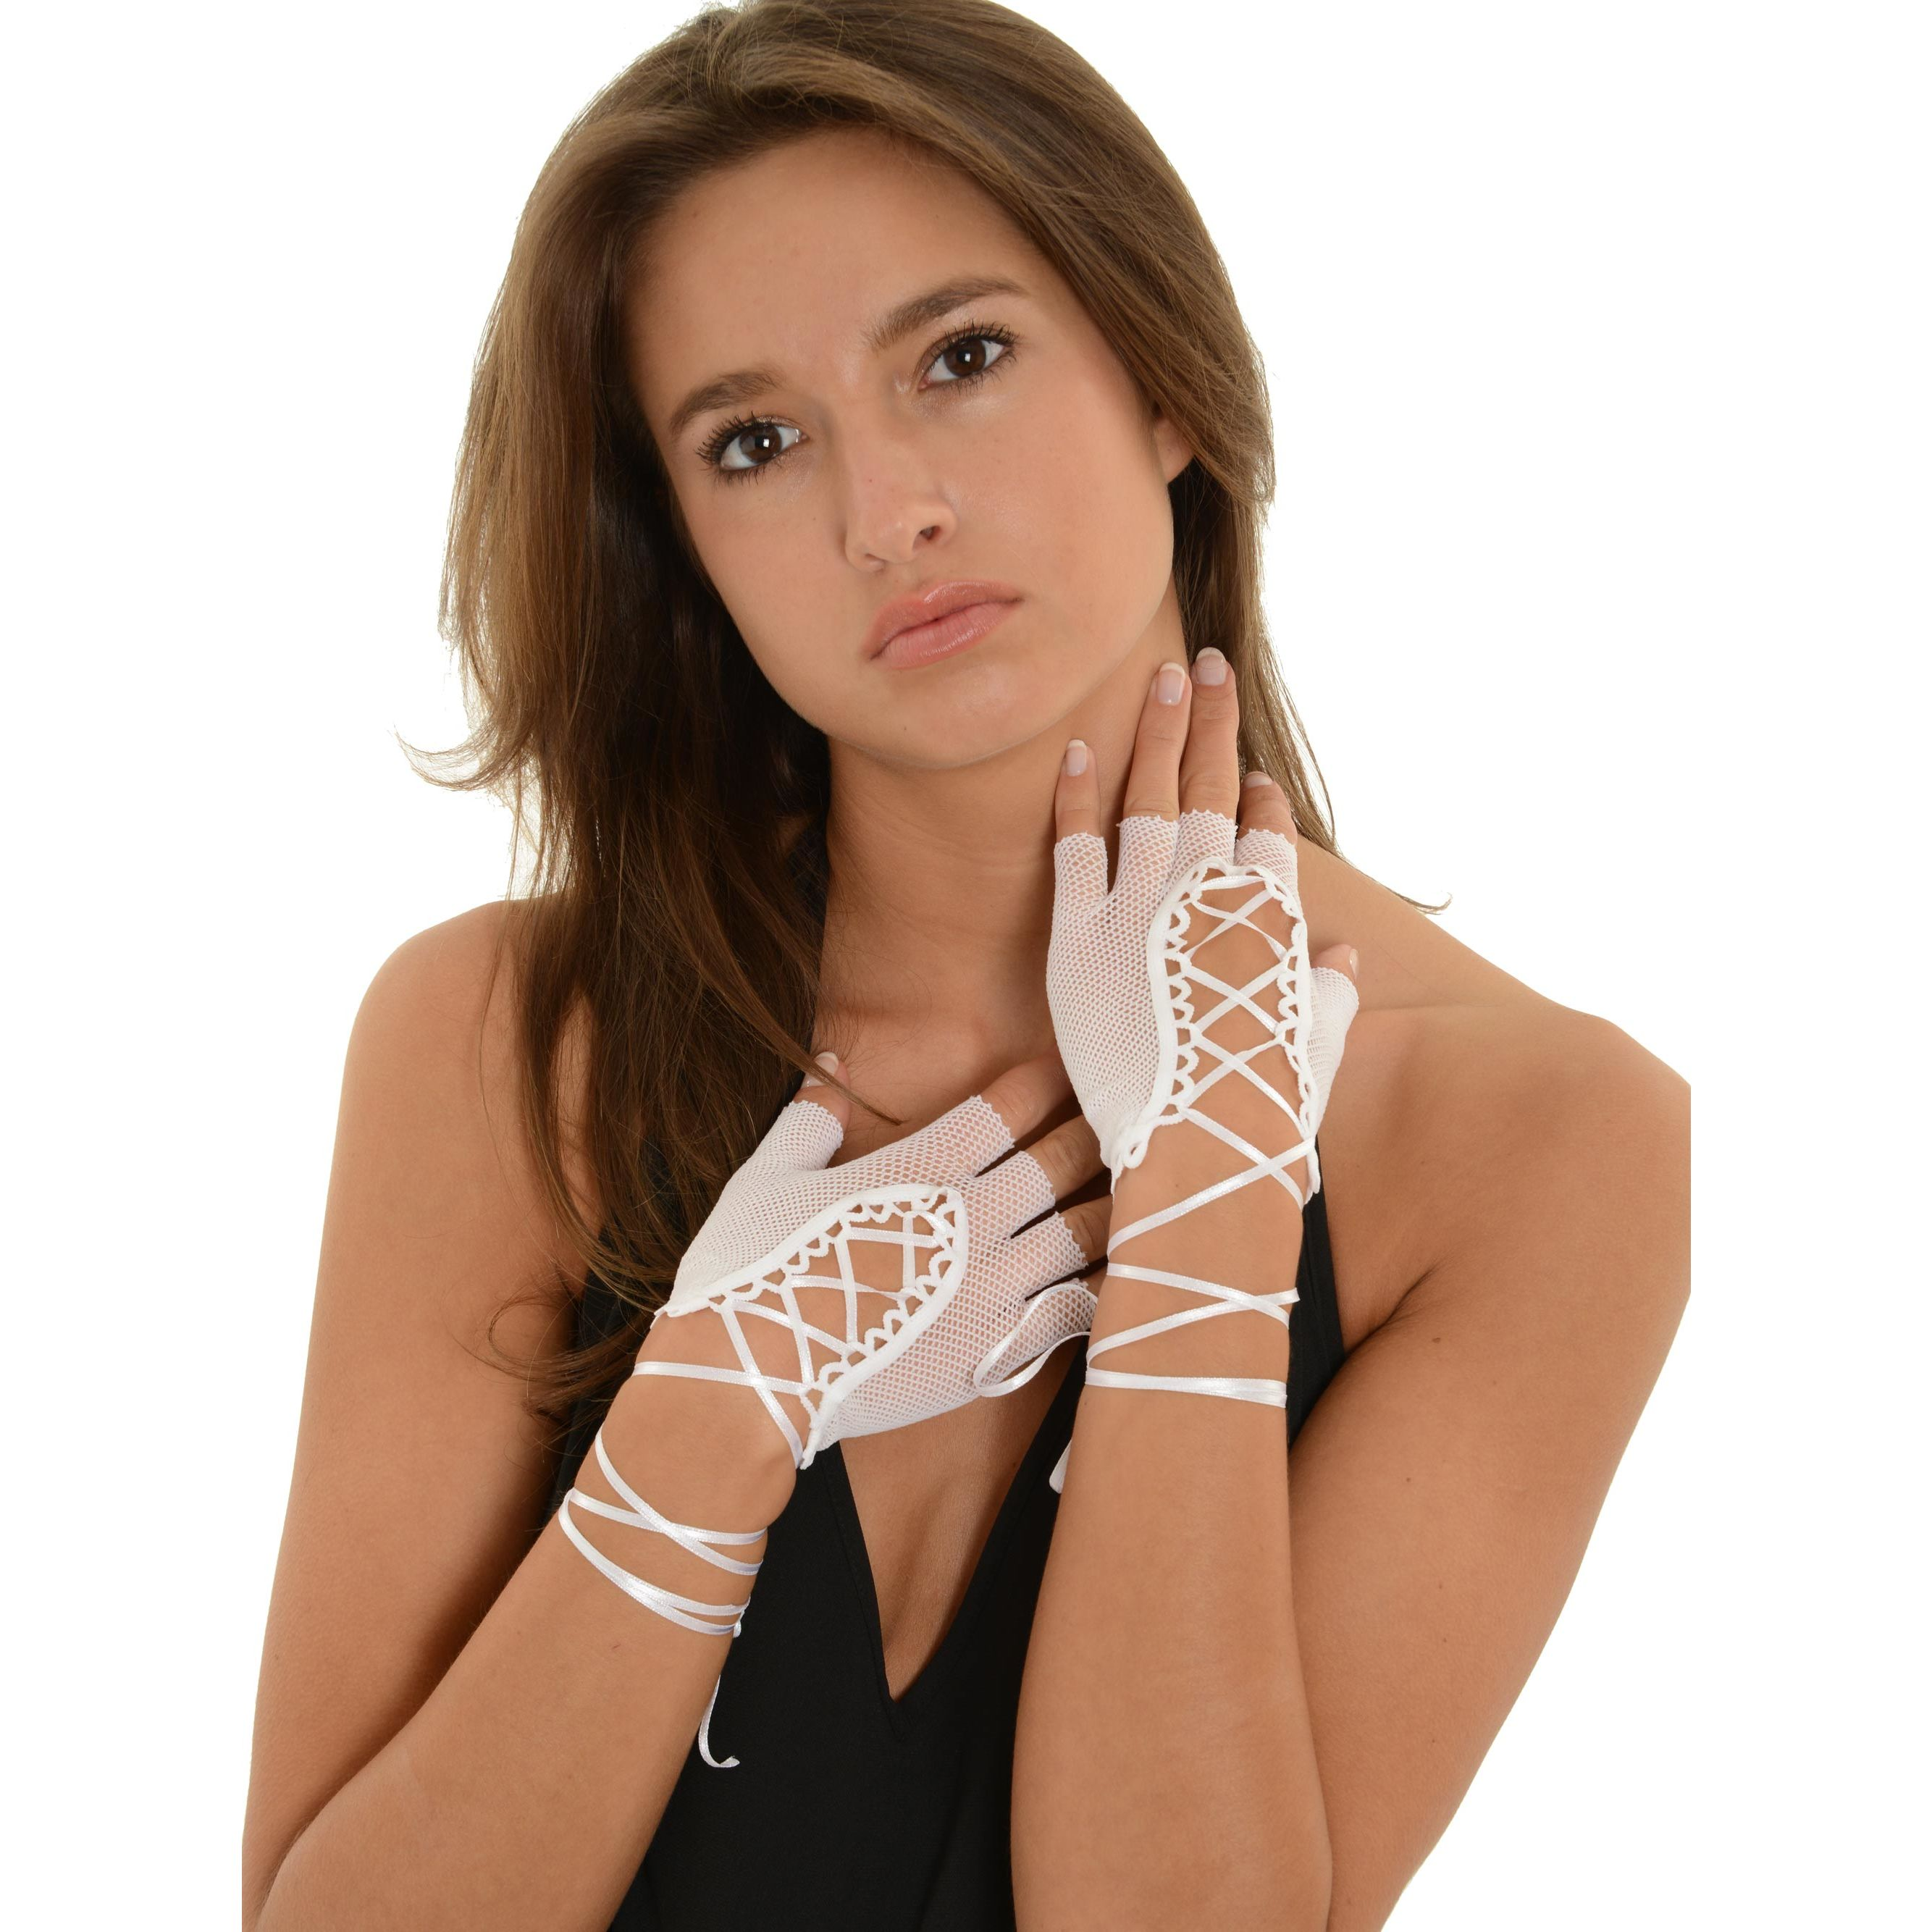 SeXy Lace Up Fishnet Gloves Fingerless 4 Colors White Red Hot Pink or Black